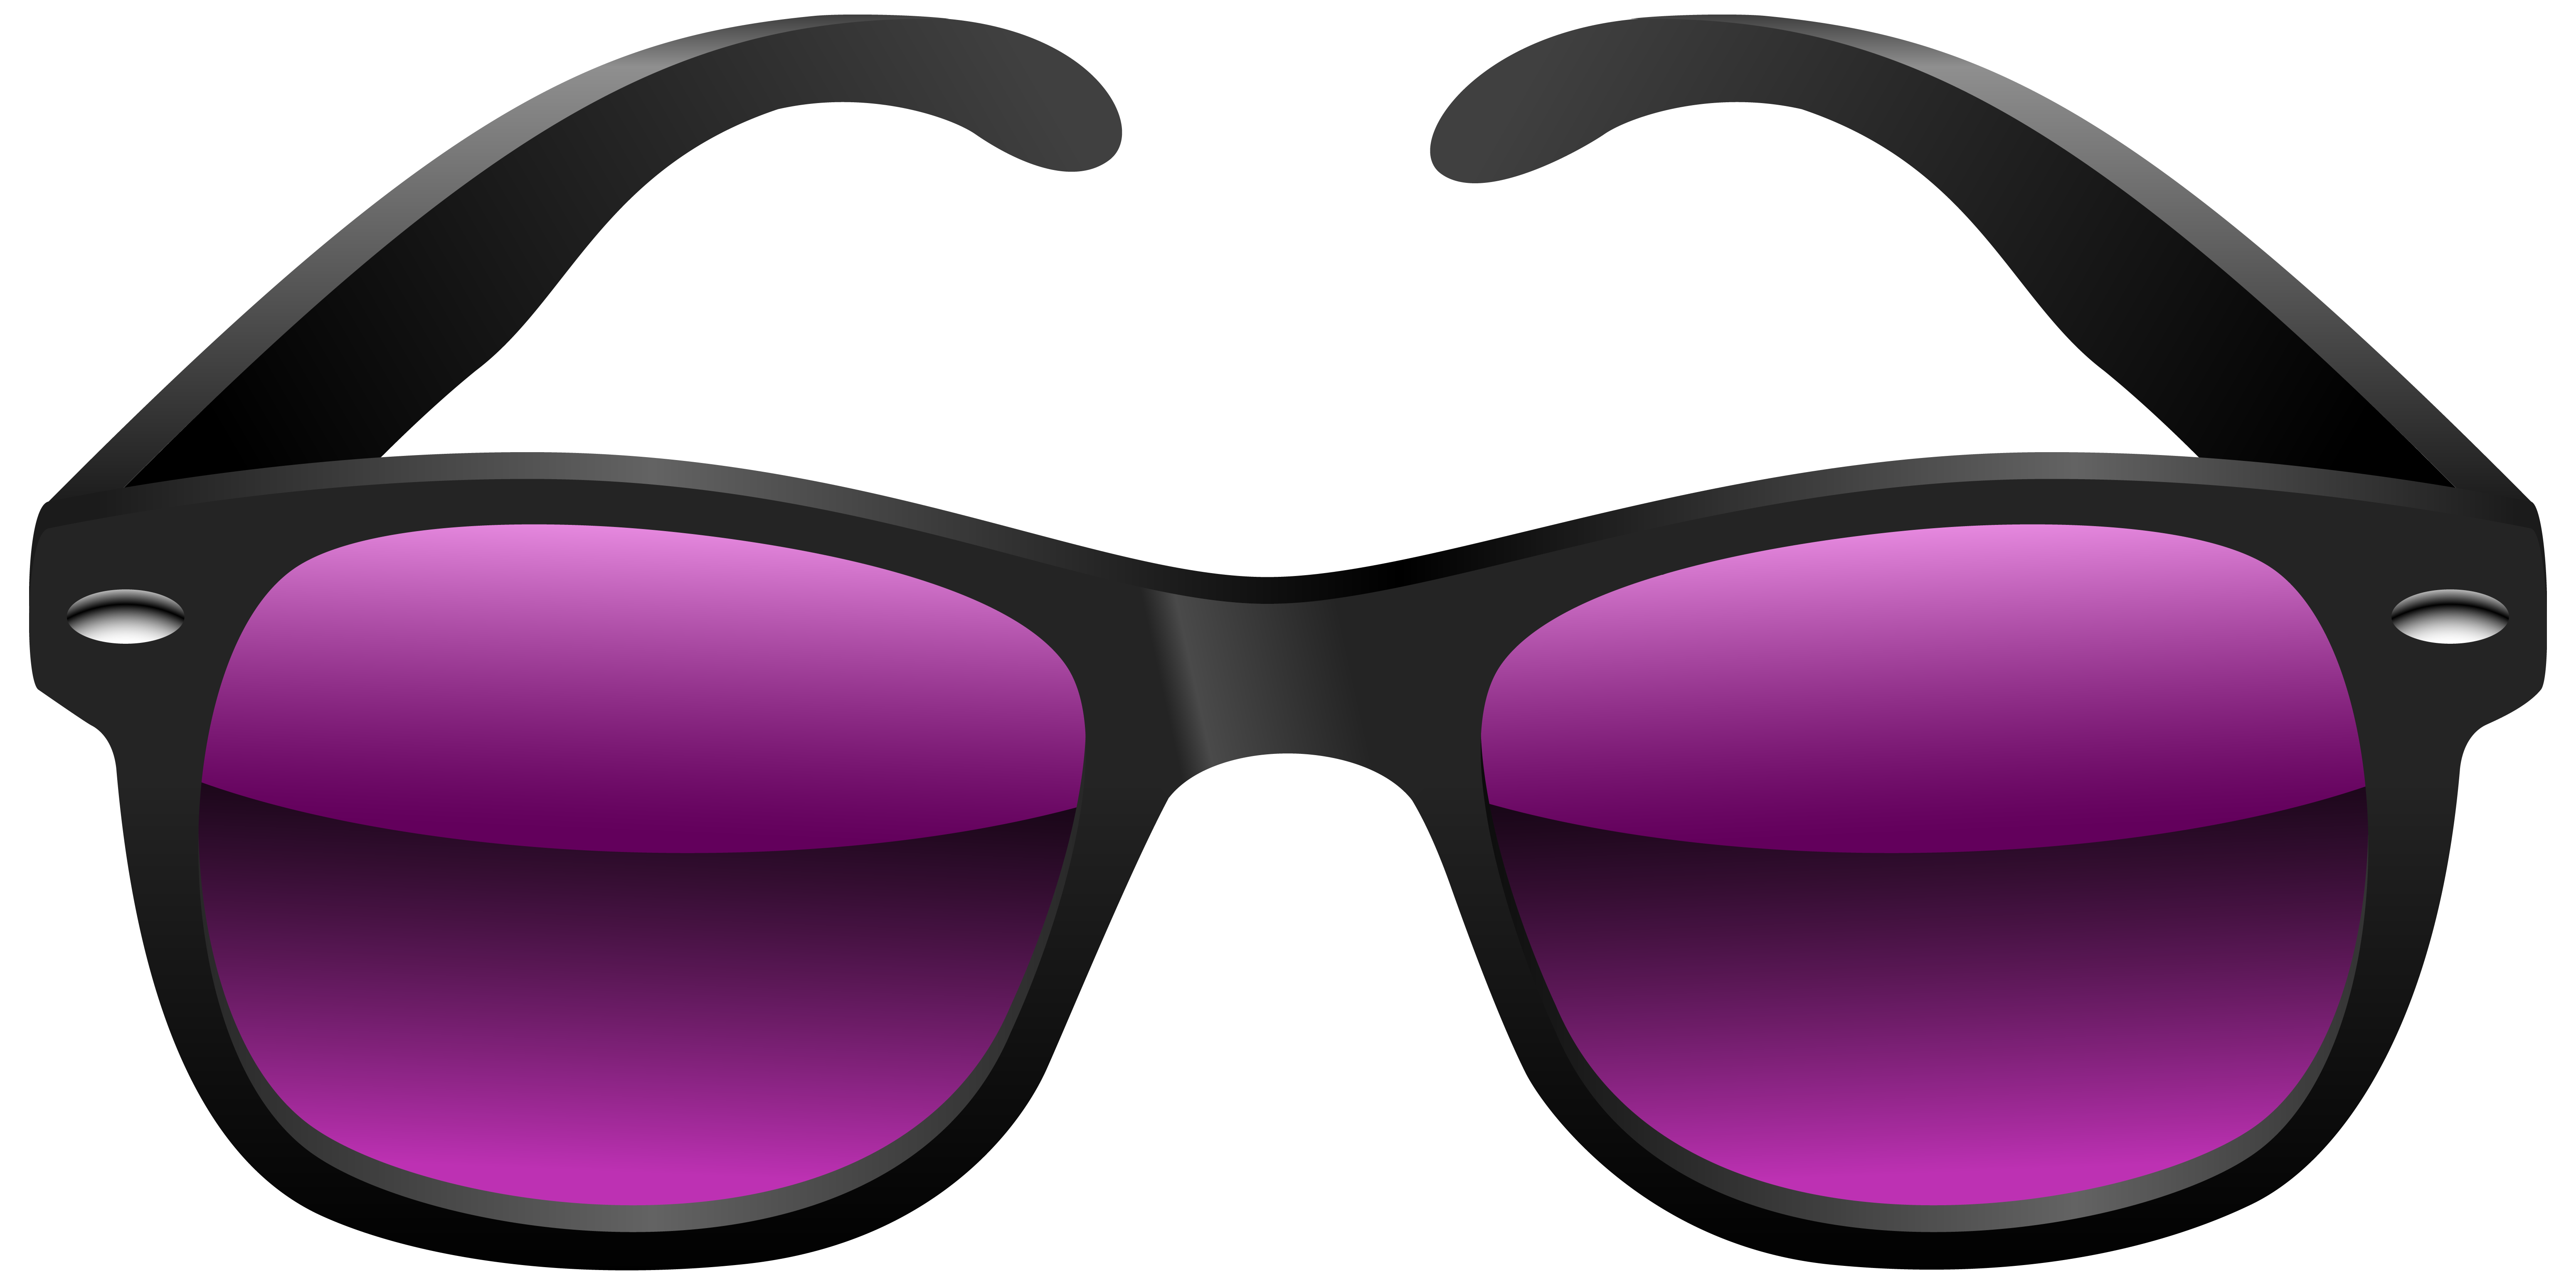 Sunglasses clipart #5, Download drawings